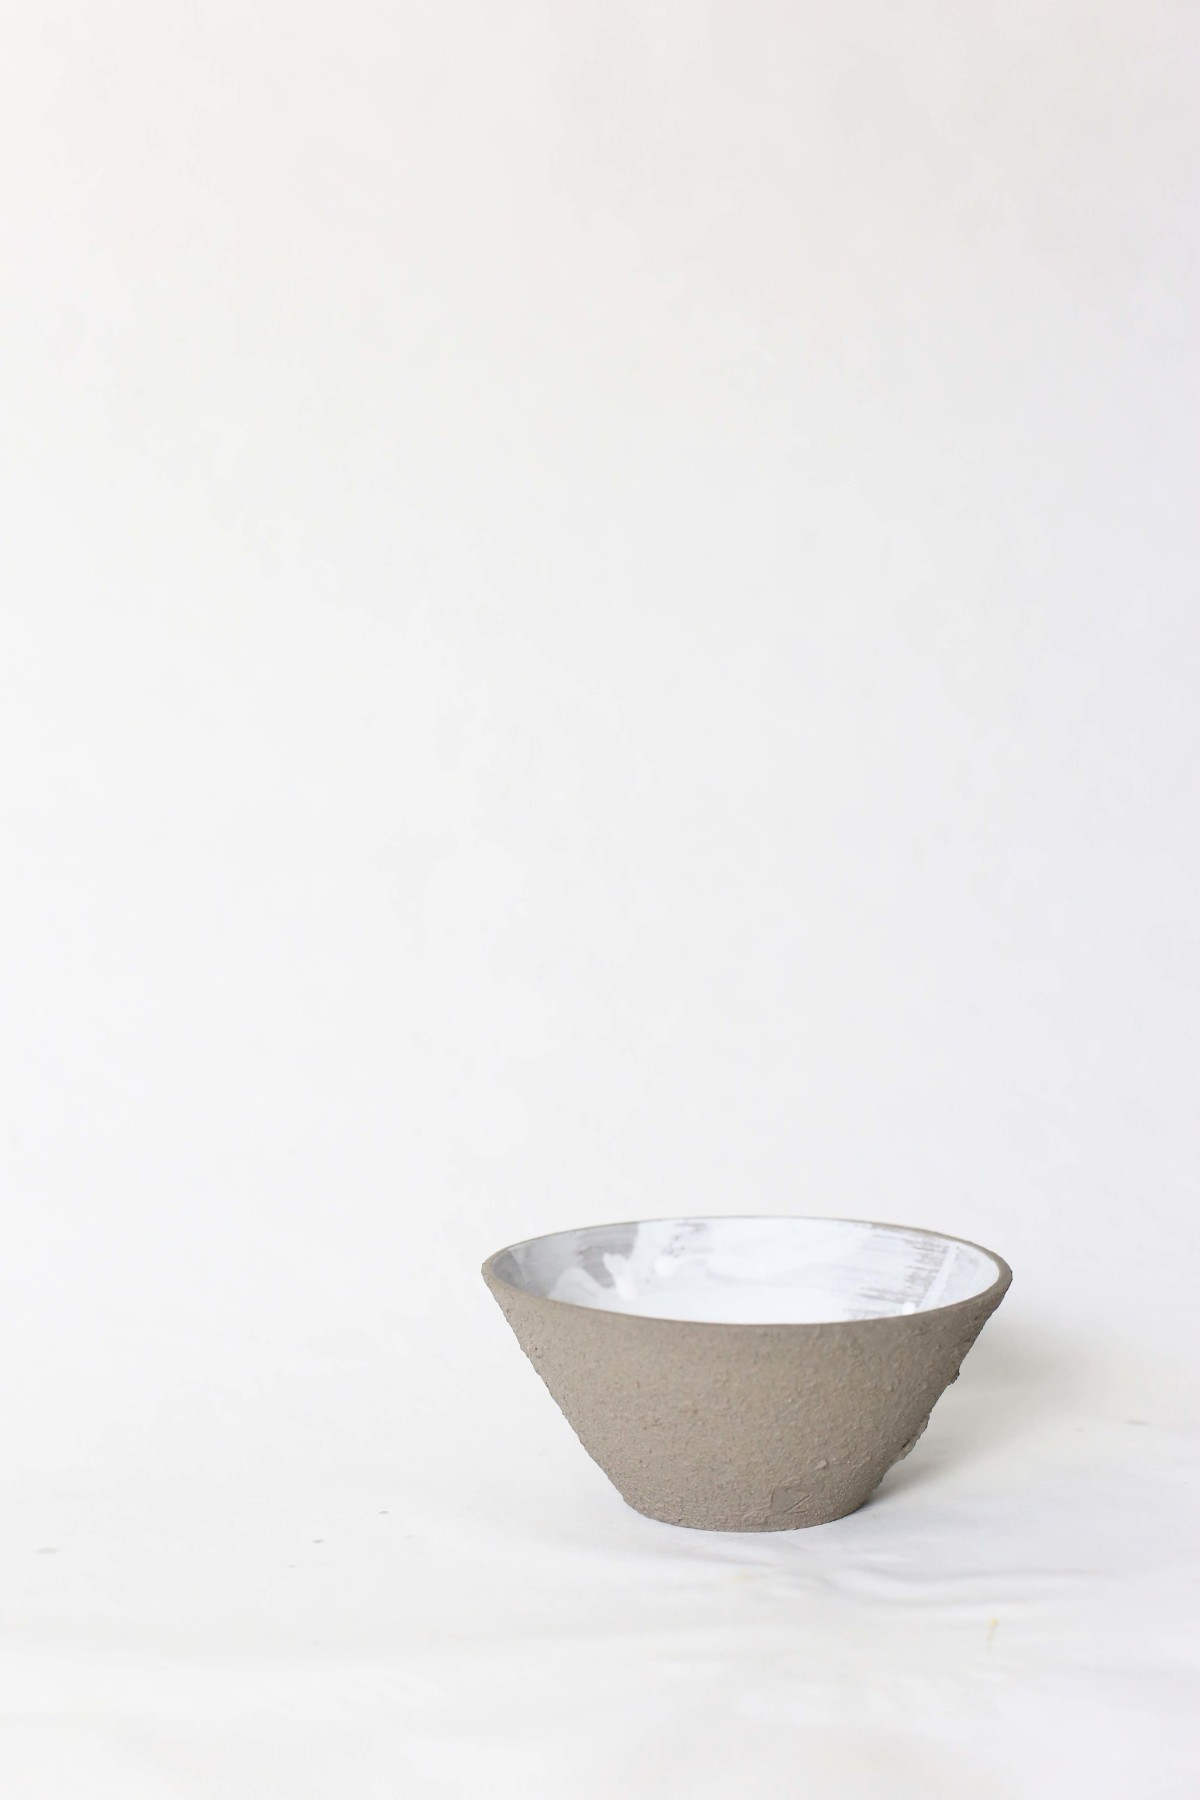 graphite color clay bowl on a white background